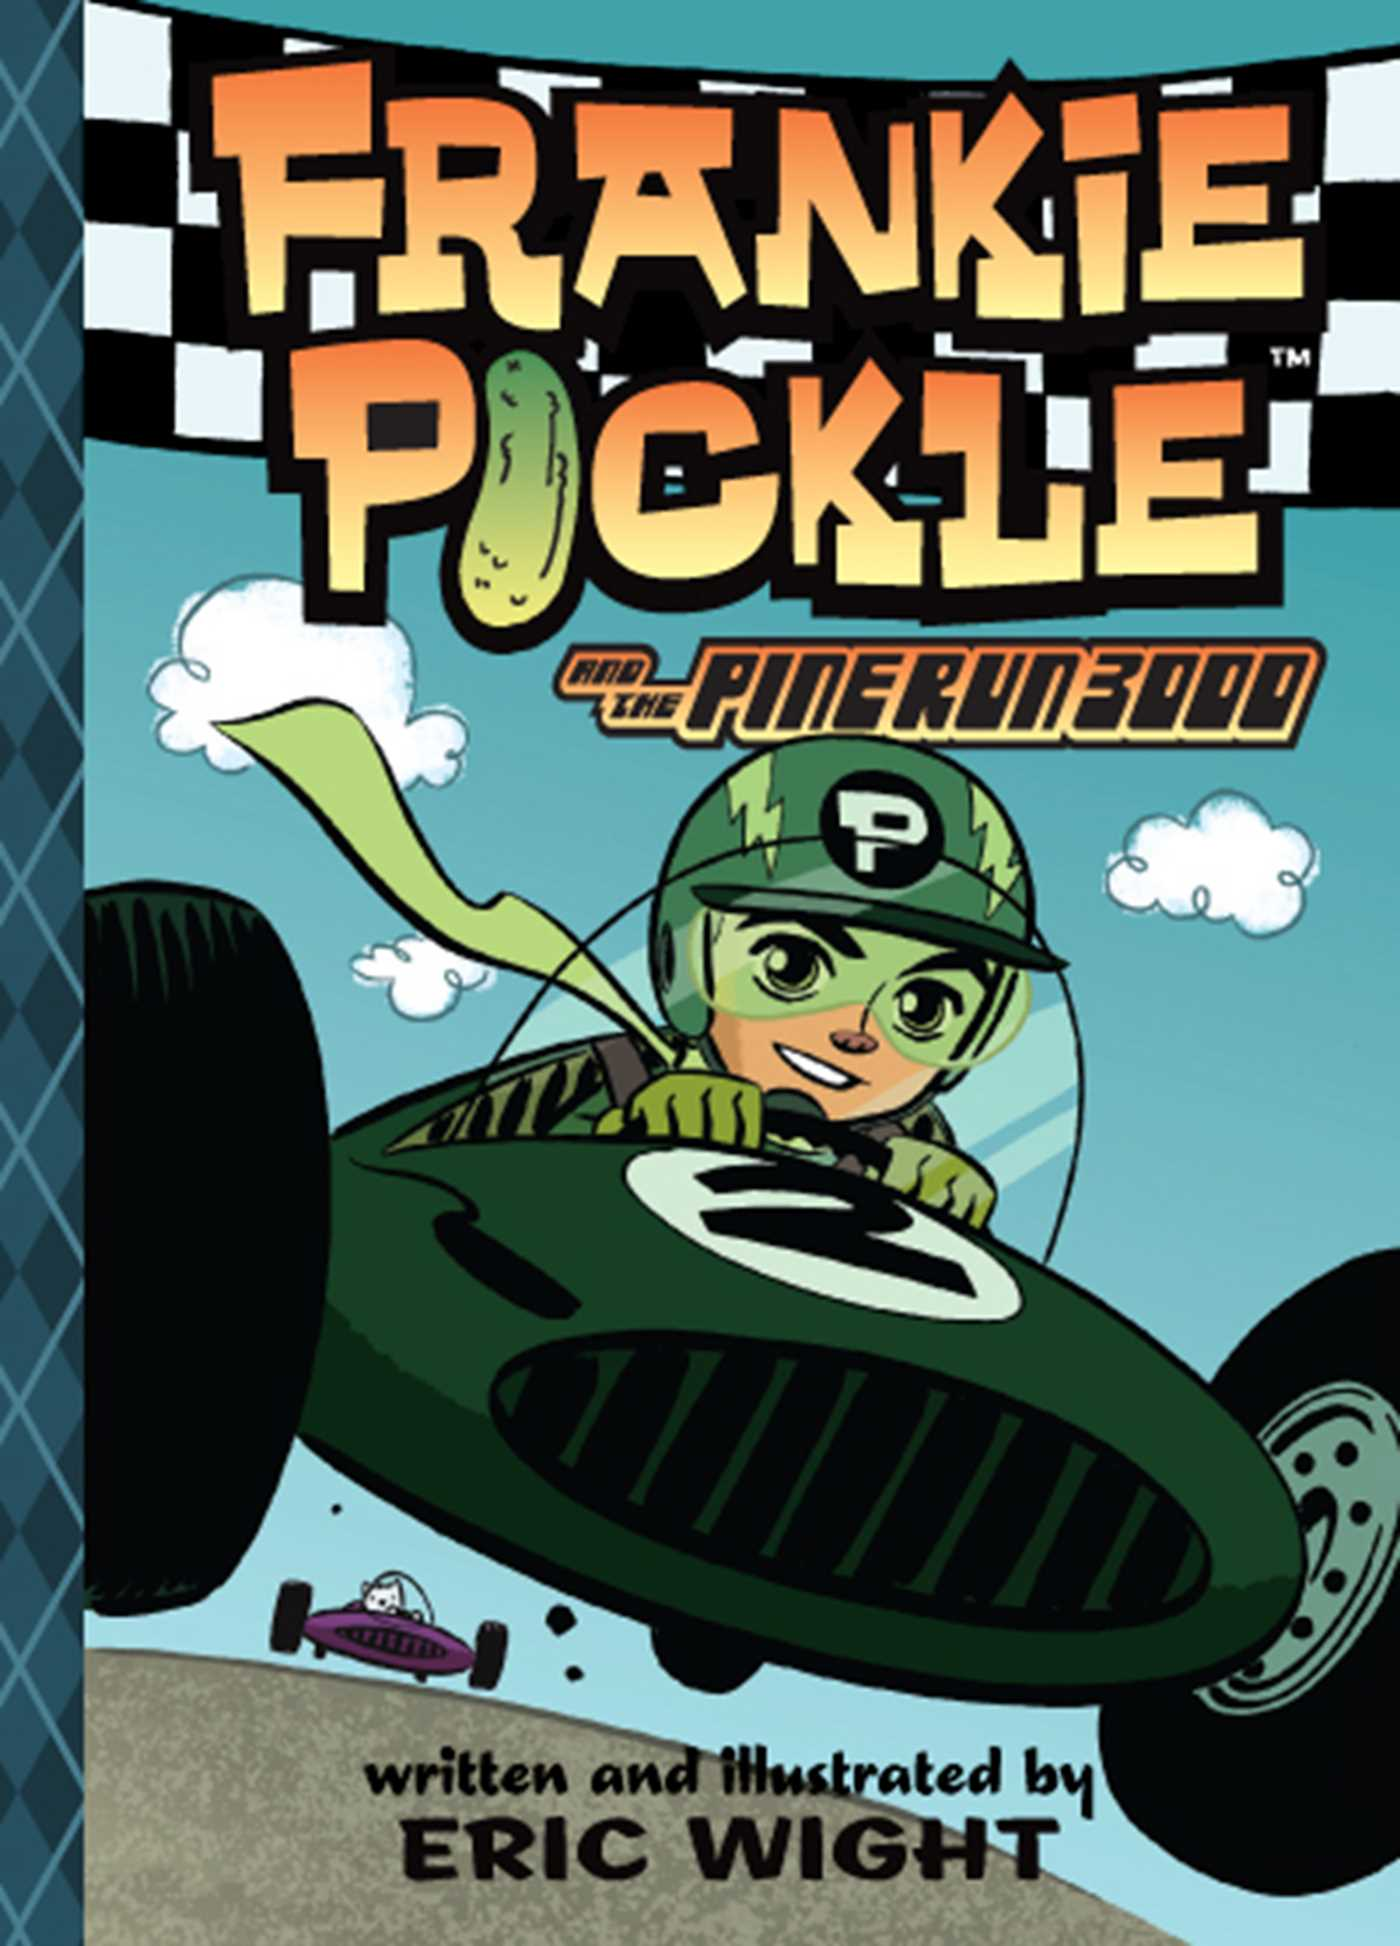 Frankie pickle and the pine run 3000 9781416998808 hr